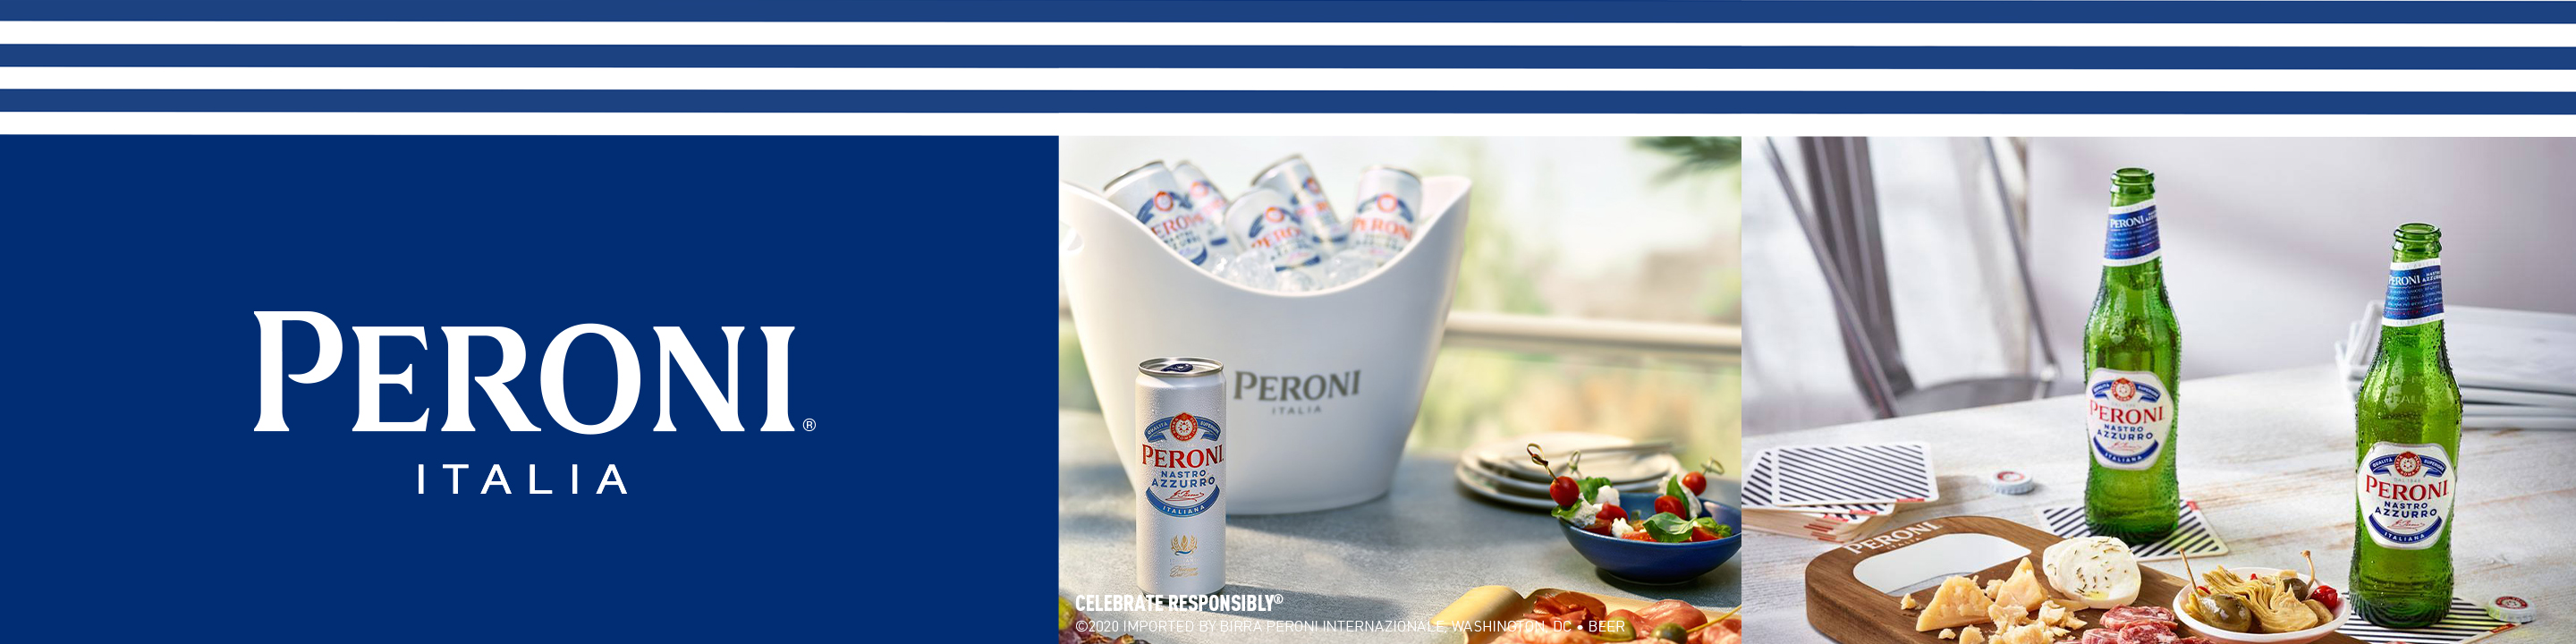 Get the authentic taste of Italy delivered right to you. Peroni Nastro Azzurro is a premium Italian lager with a crisp, refreshing taste that elevates every occasion. Enjoy the classic, effortless Italian style of Peroni at home and sip elegantly. Whatever you do, do it beautifully.